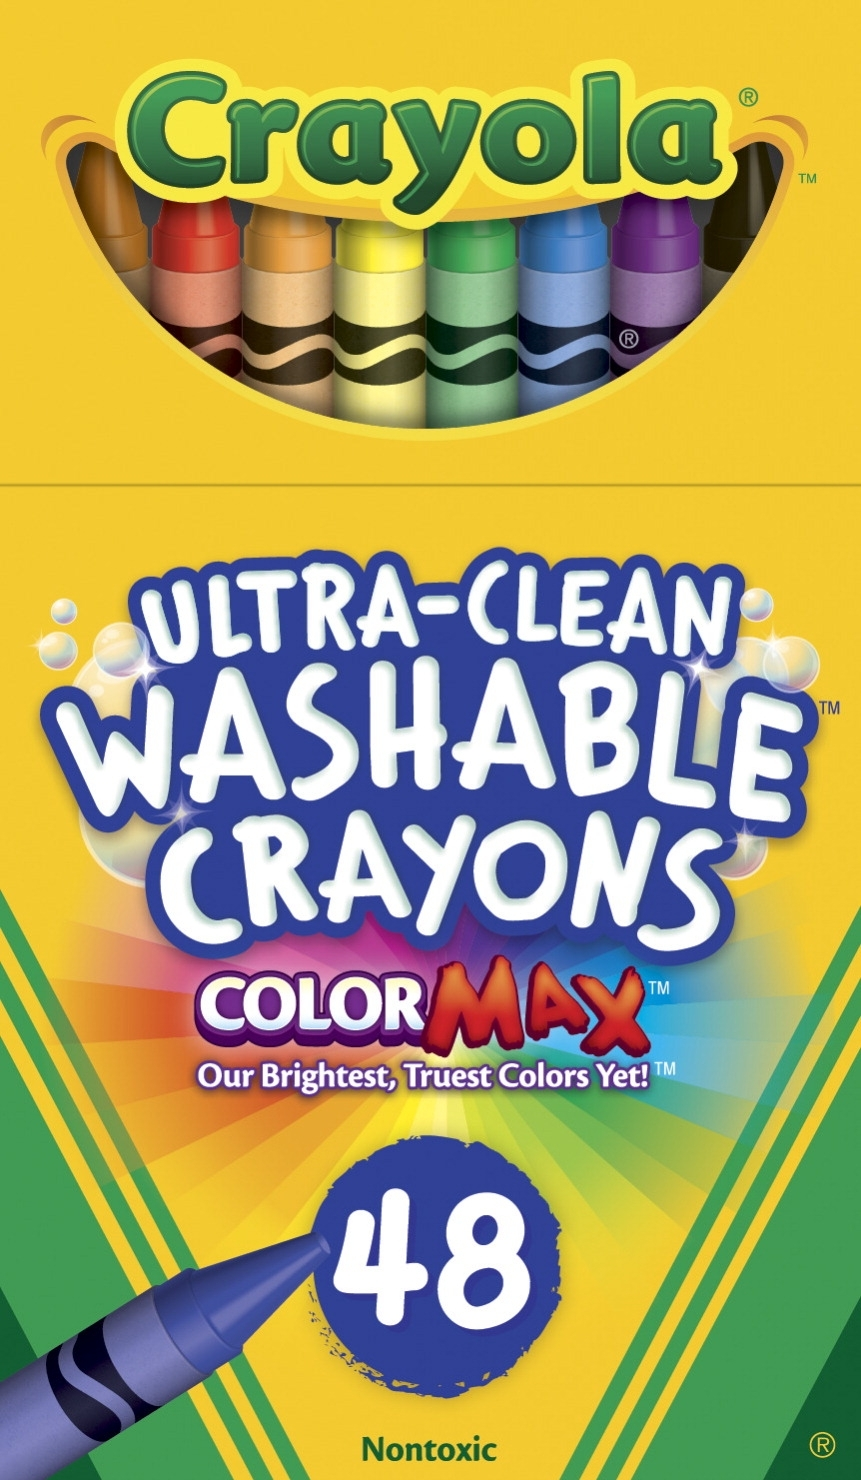 Learning: Supplies Art & Craft Supplies Crayons Standard Crayons - 1537146 - Crayola Ultra-clean Washable Crayons; Assorted Colors; Set Of 48 1537146